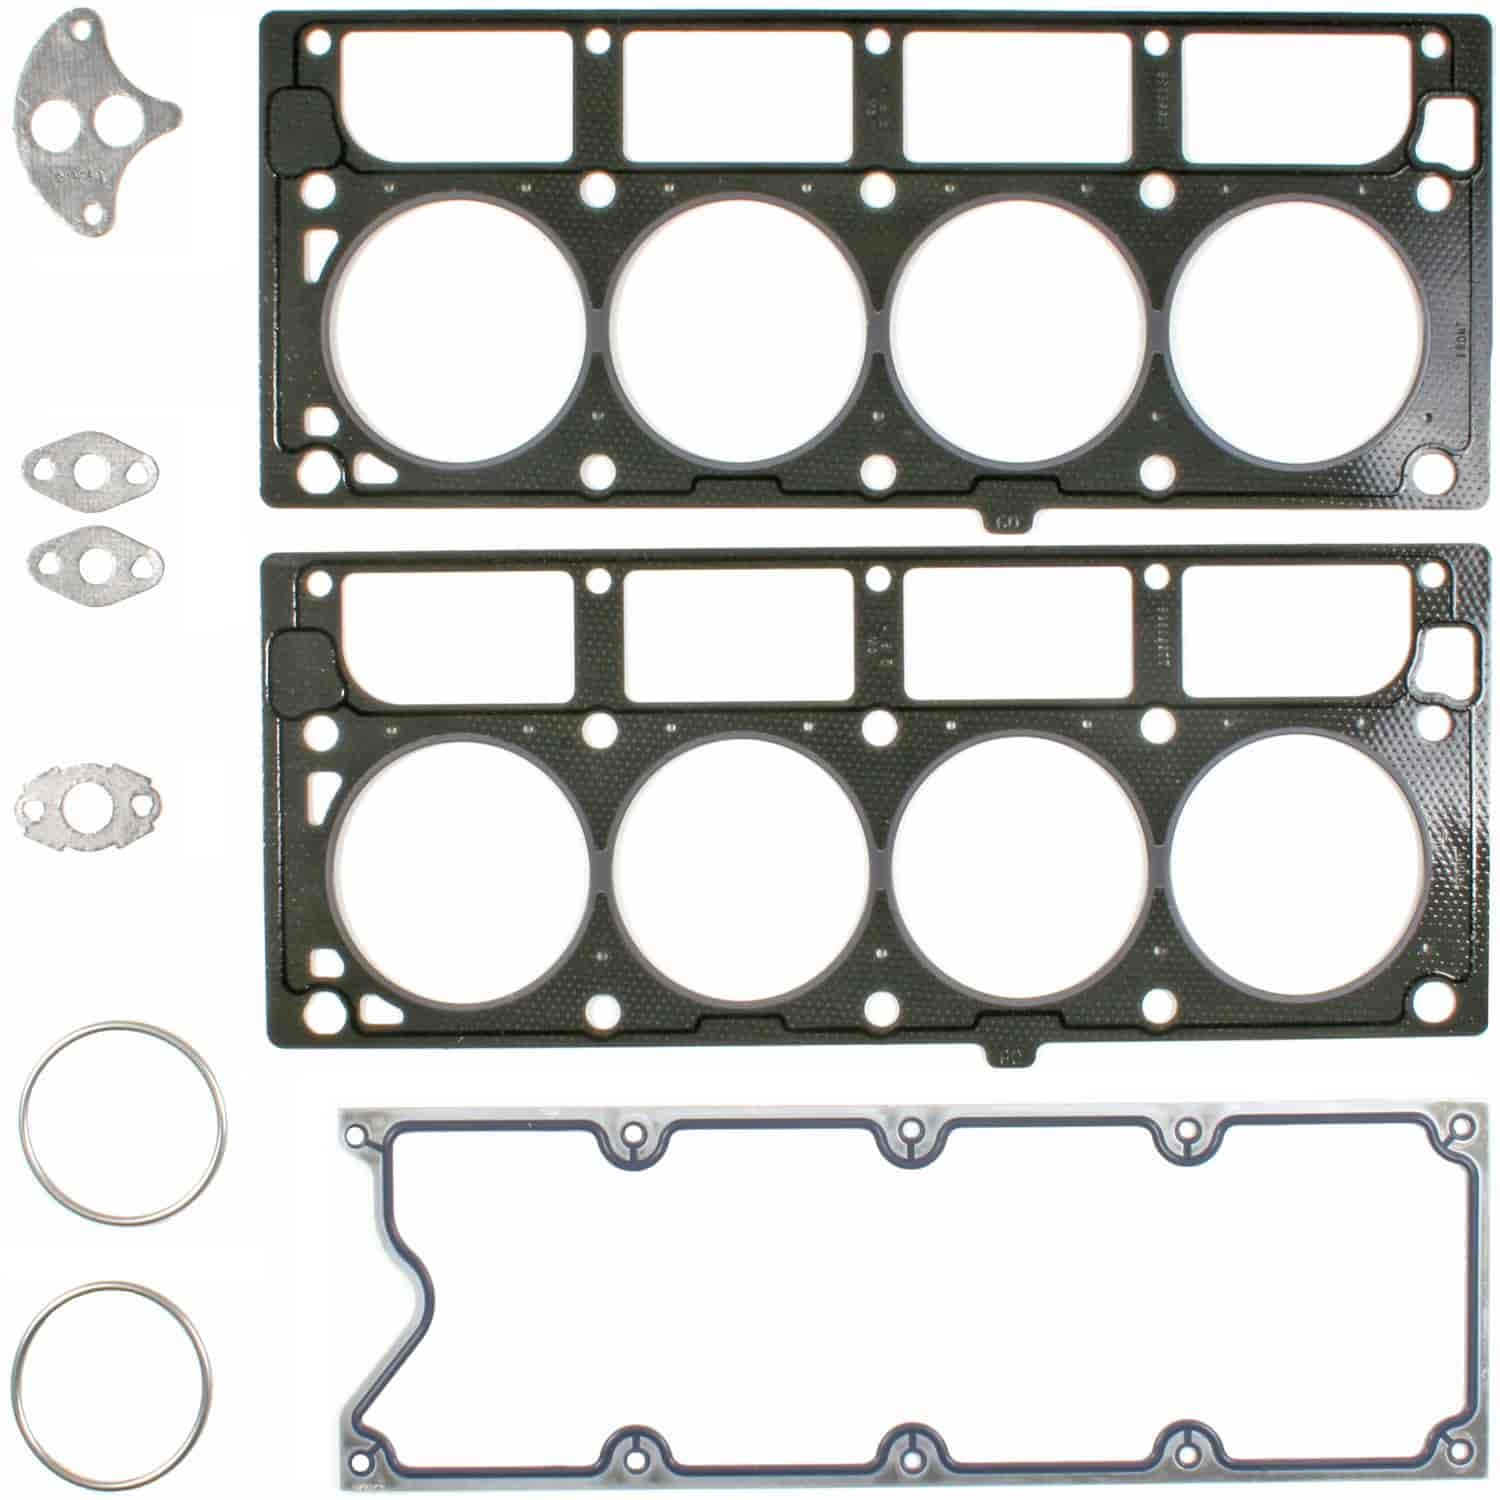 1996 Gmc Safari Cargo Head Gasket: Clevite MAHLE HS54341: Head Gasket Set 1999-2000 Chevy LS